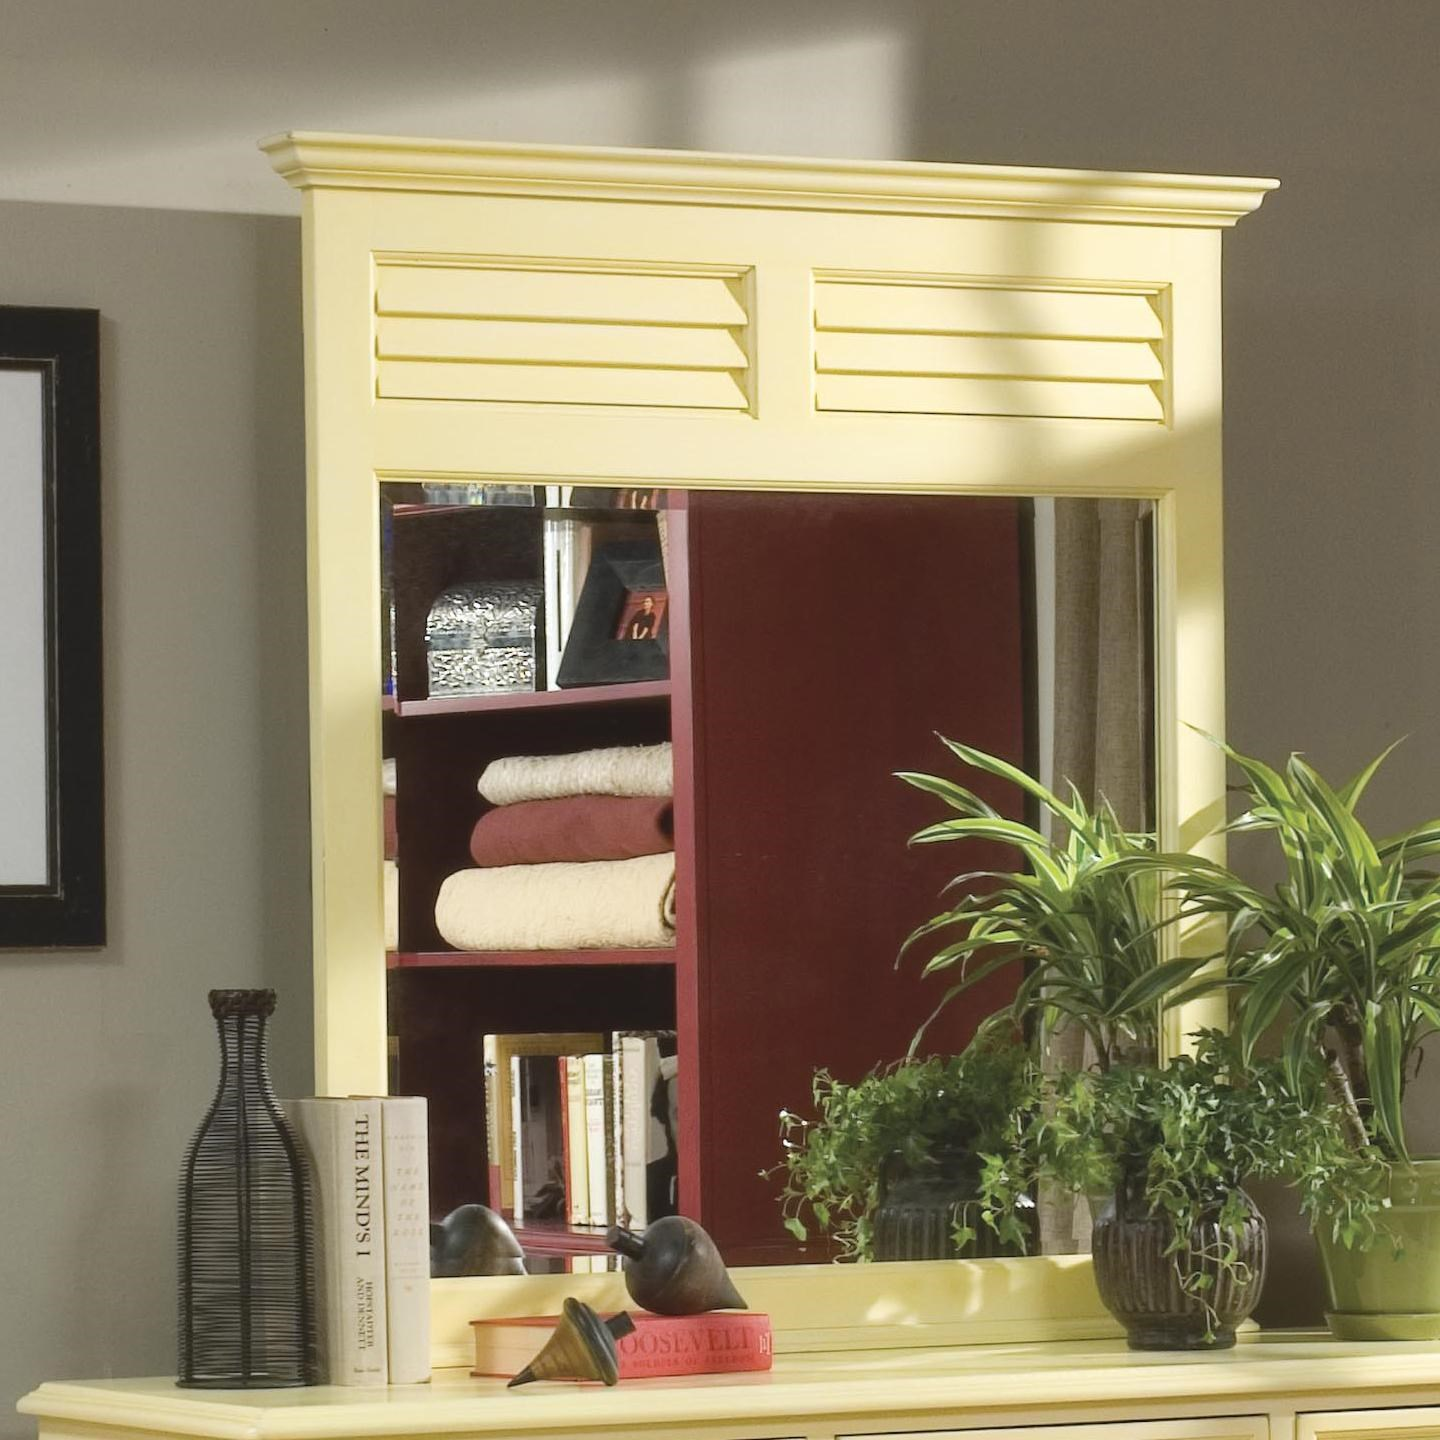 Linwood Furniture Villages Of Gulf Breeze Landscape Wall Mirror Find Your Furniture Dresser Mirror